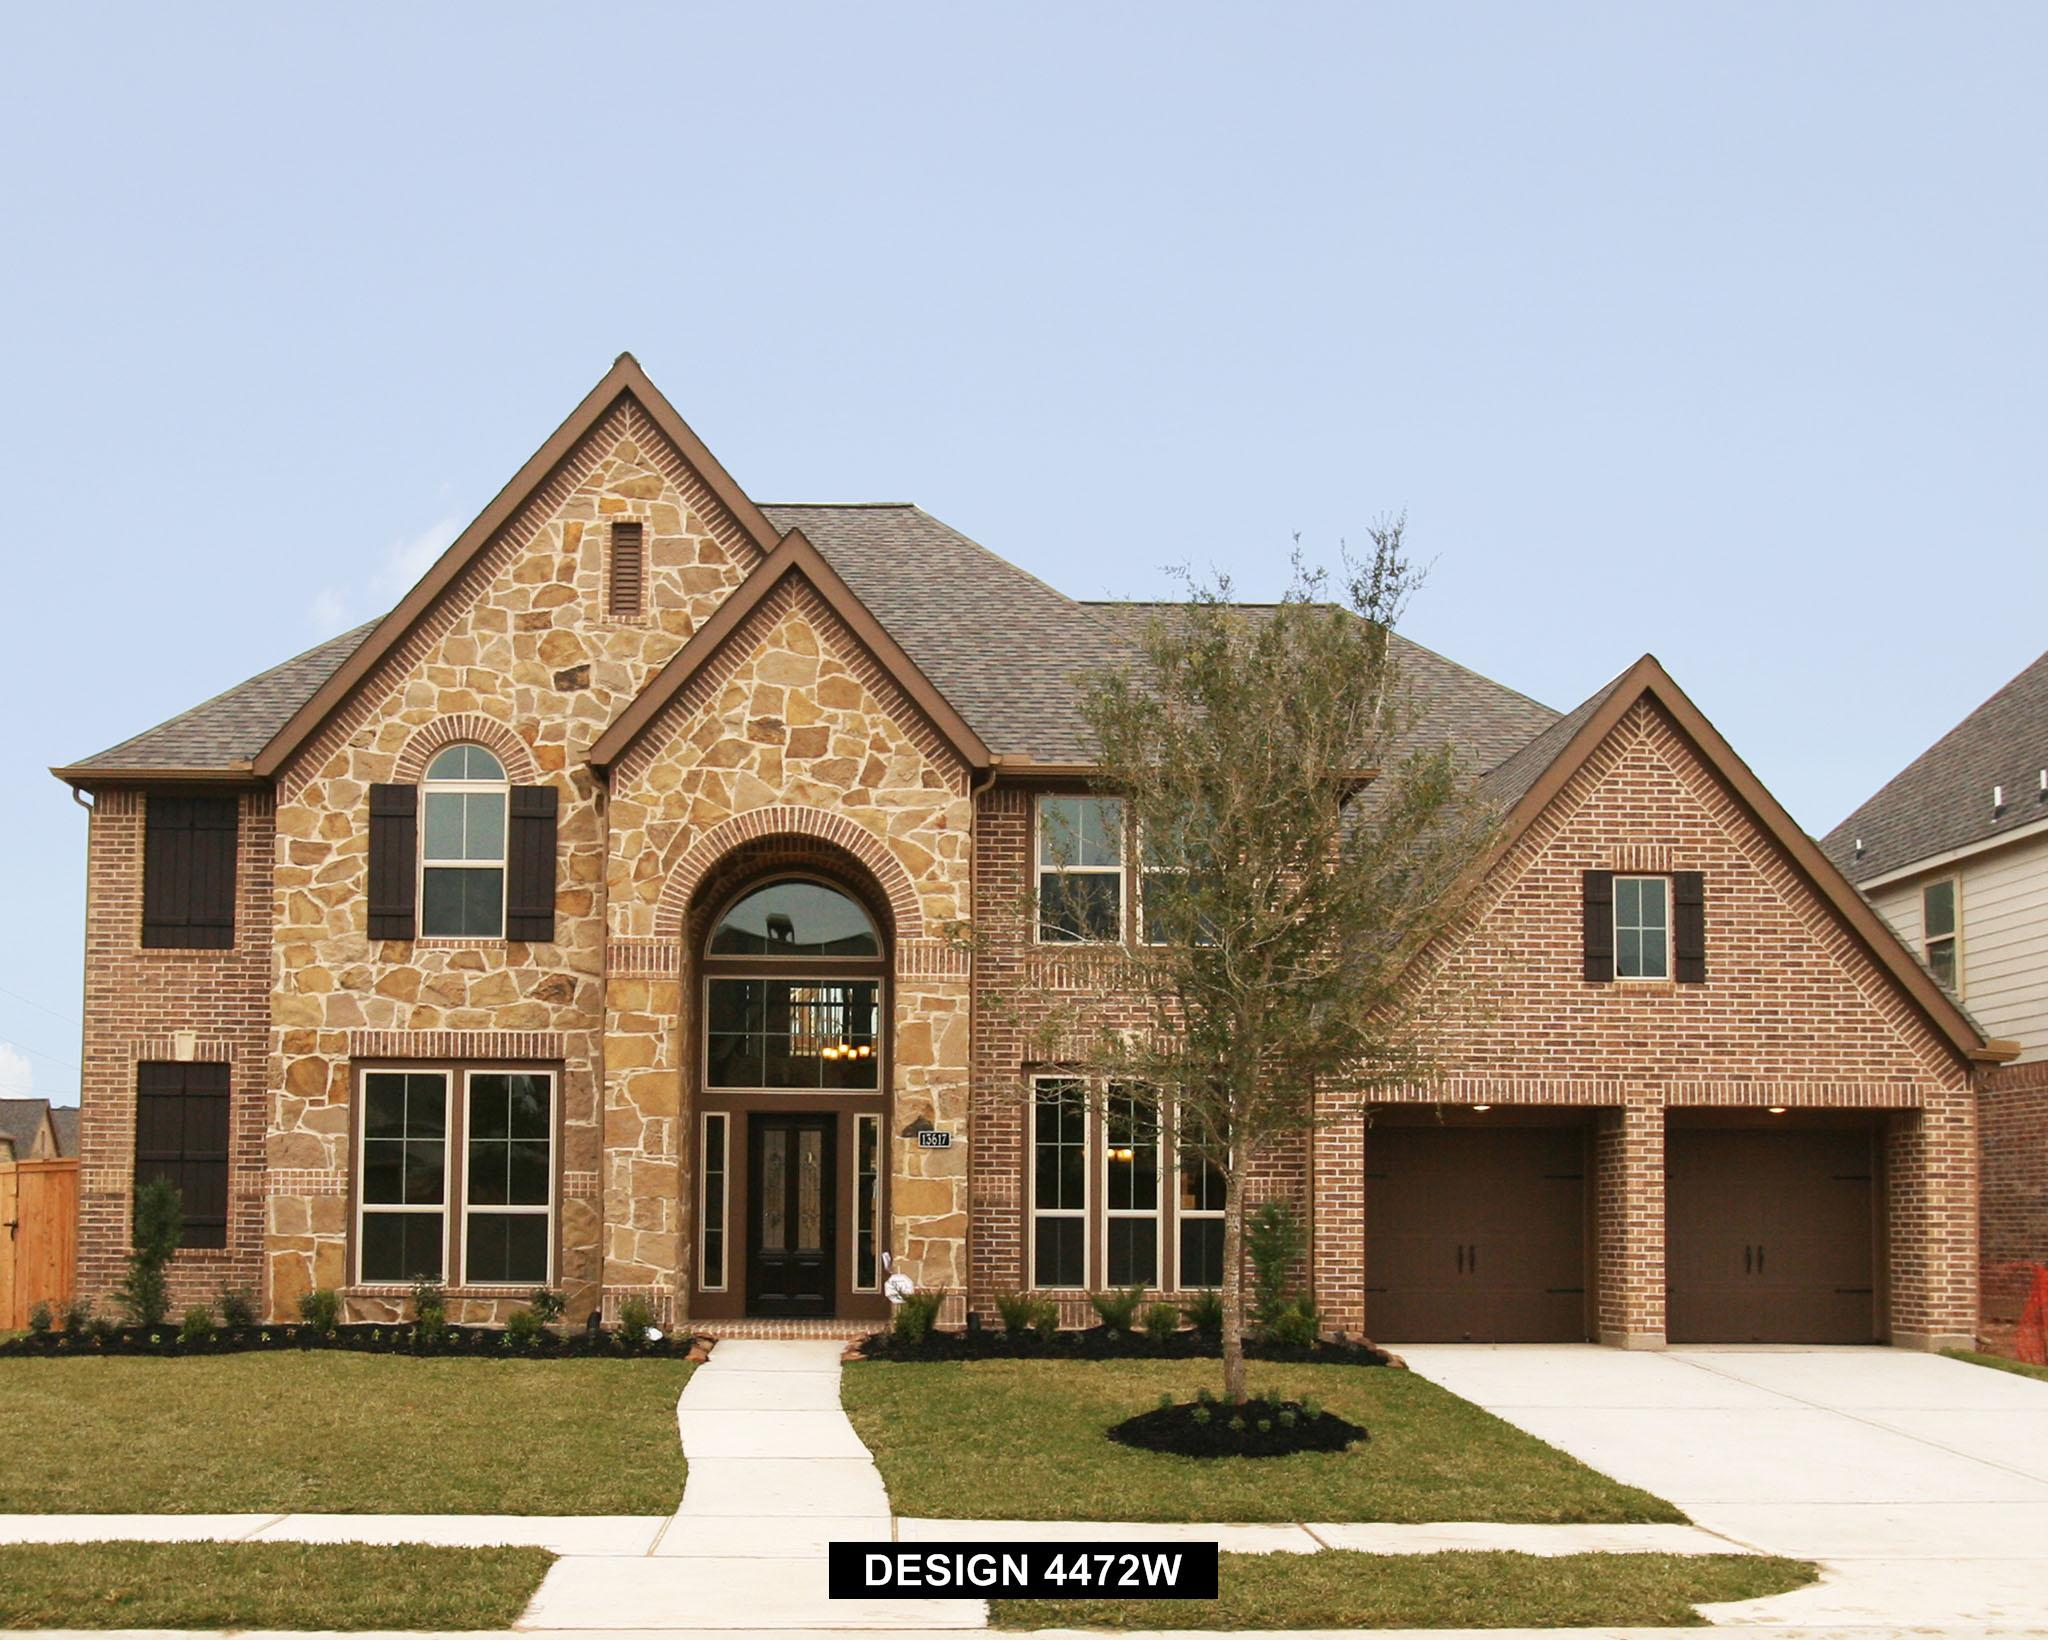 4472W - Shadow Creek Ranch - Azalea Creek 70': Pearland, TX - Perry Homes